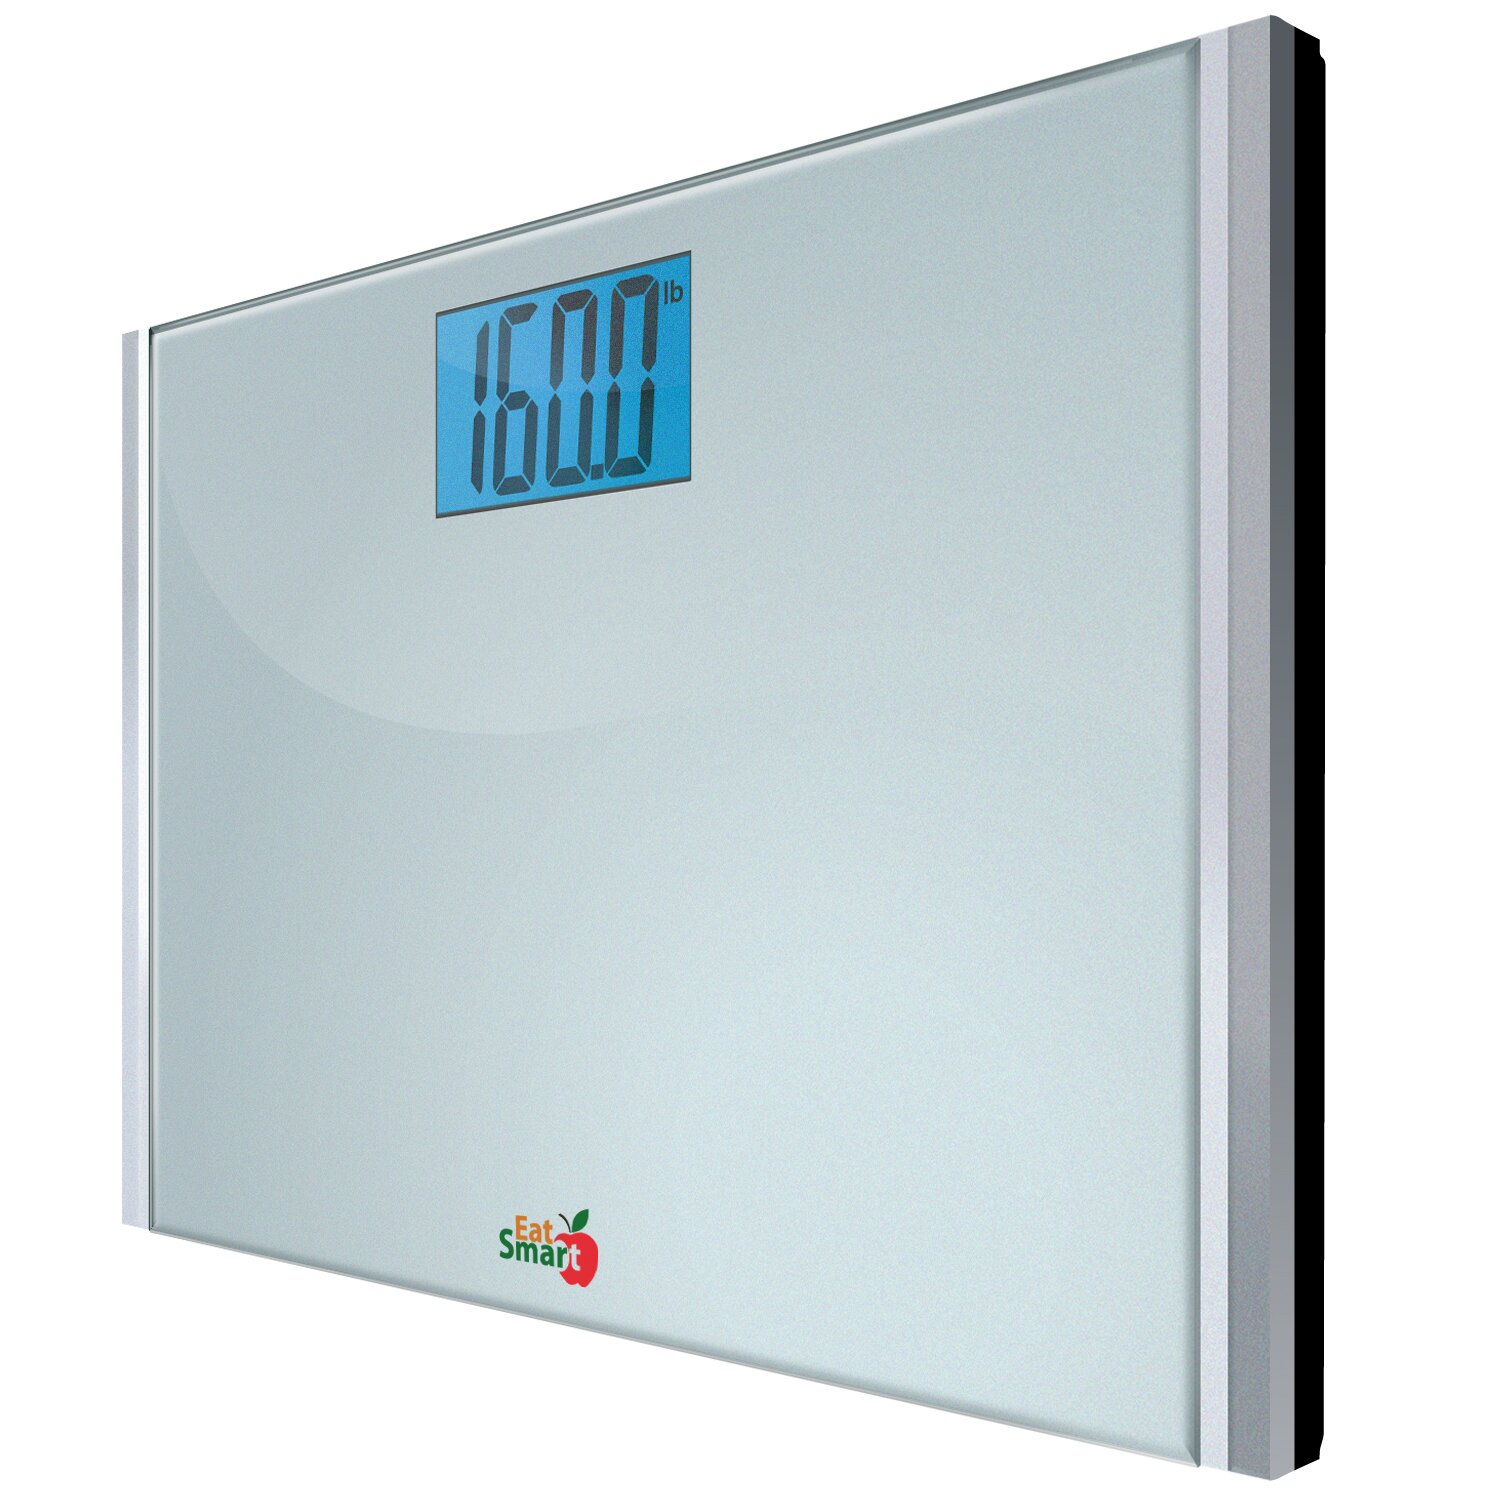 Bathroom Scale Ratings: EatSmart Precision Plus Bathroom Scale & Reviews